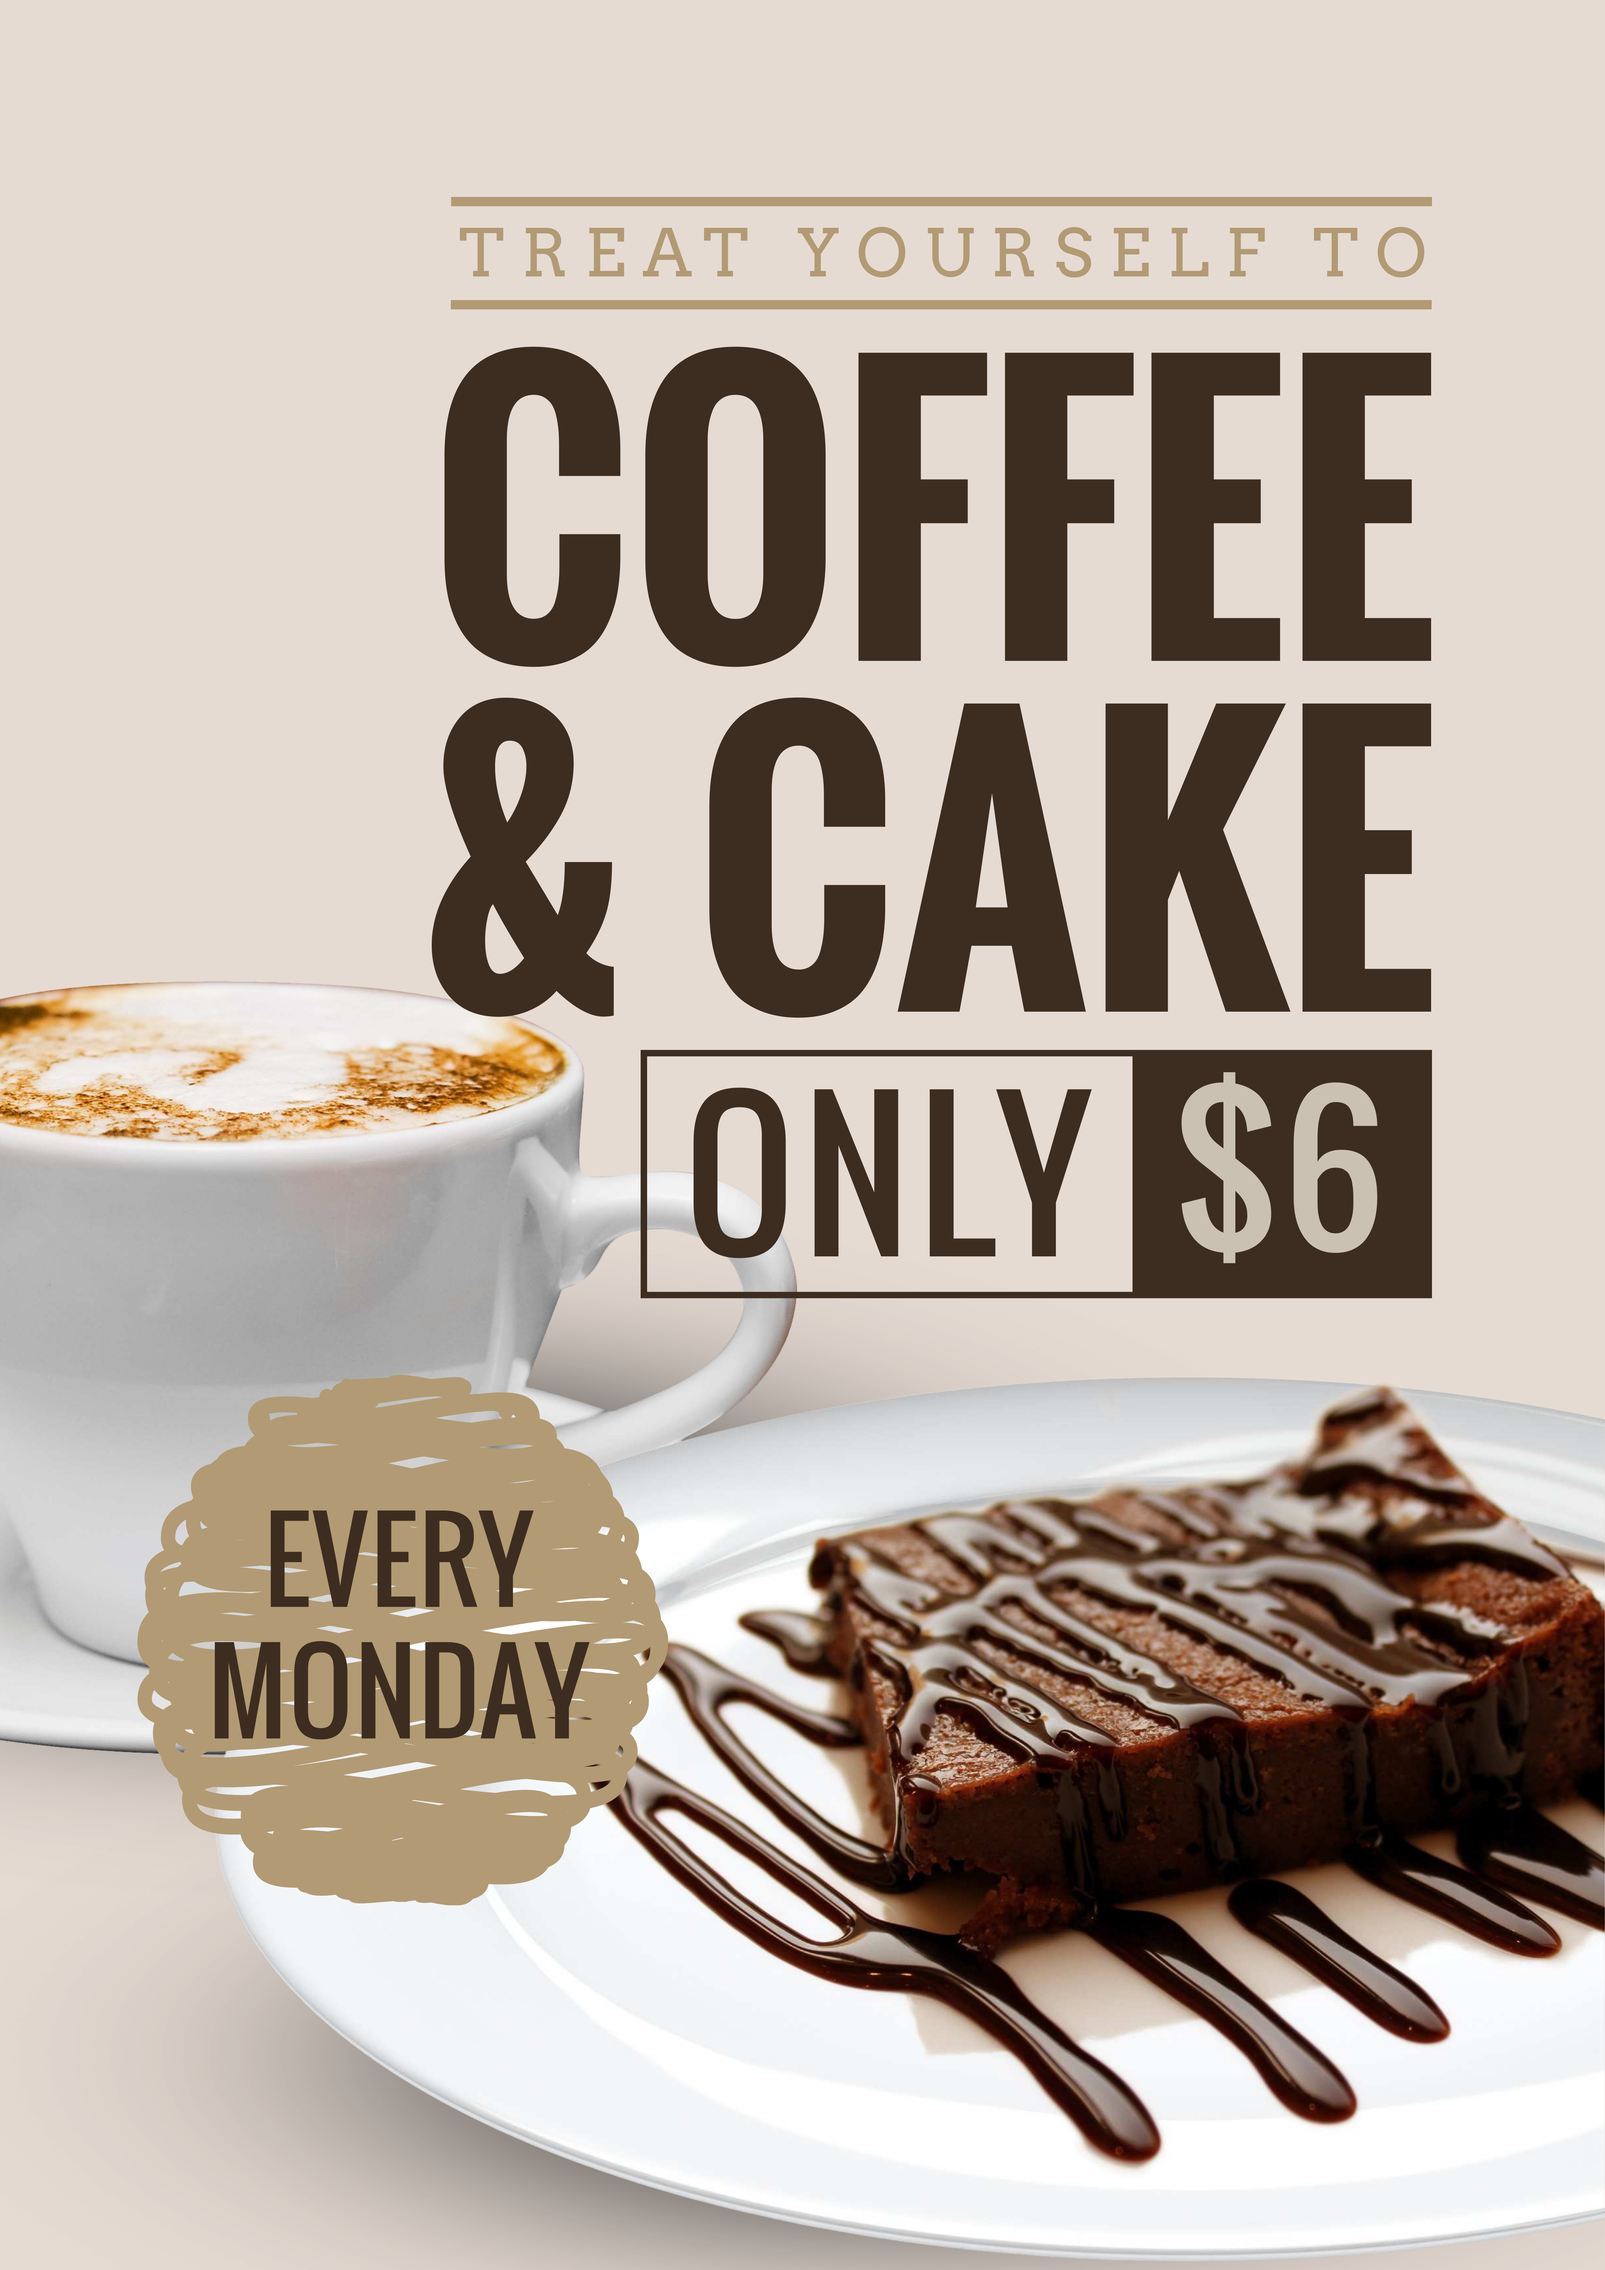 Coffee & Cake promotional template for use in your